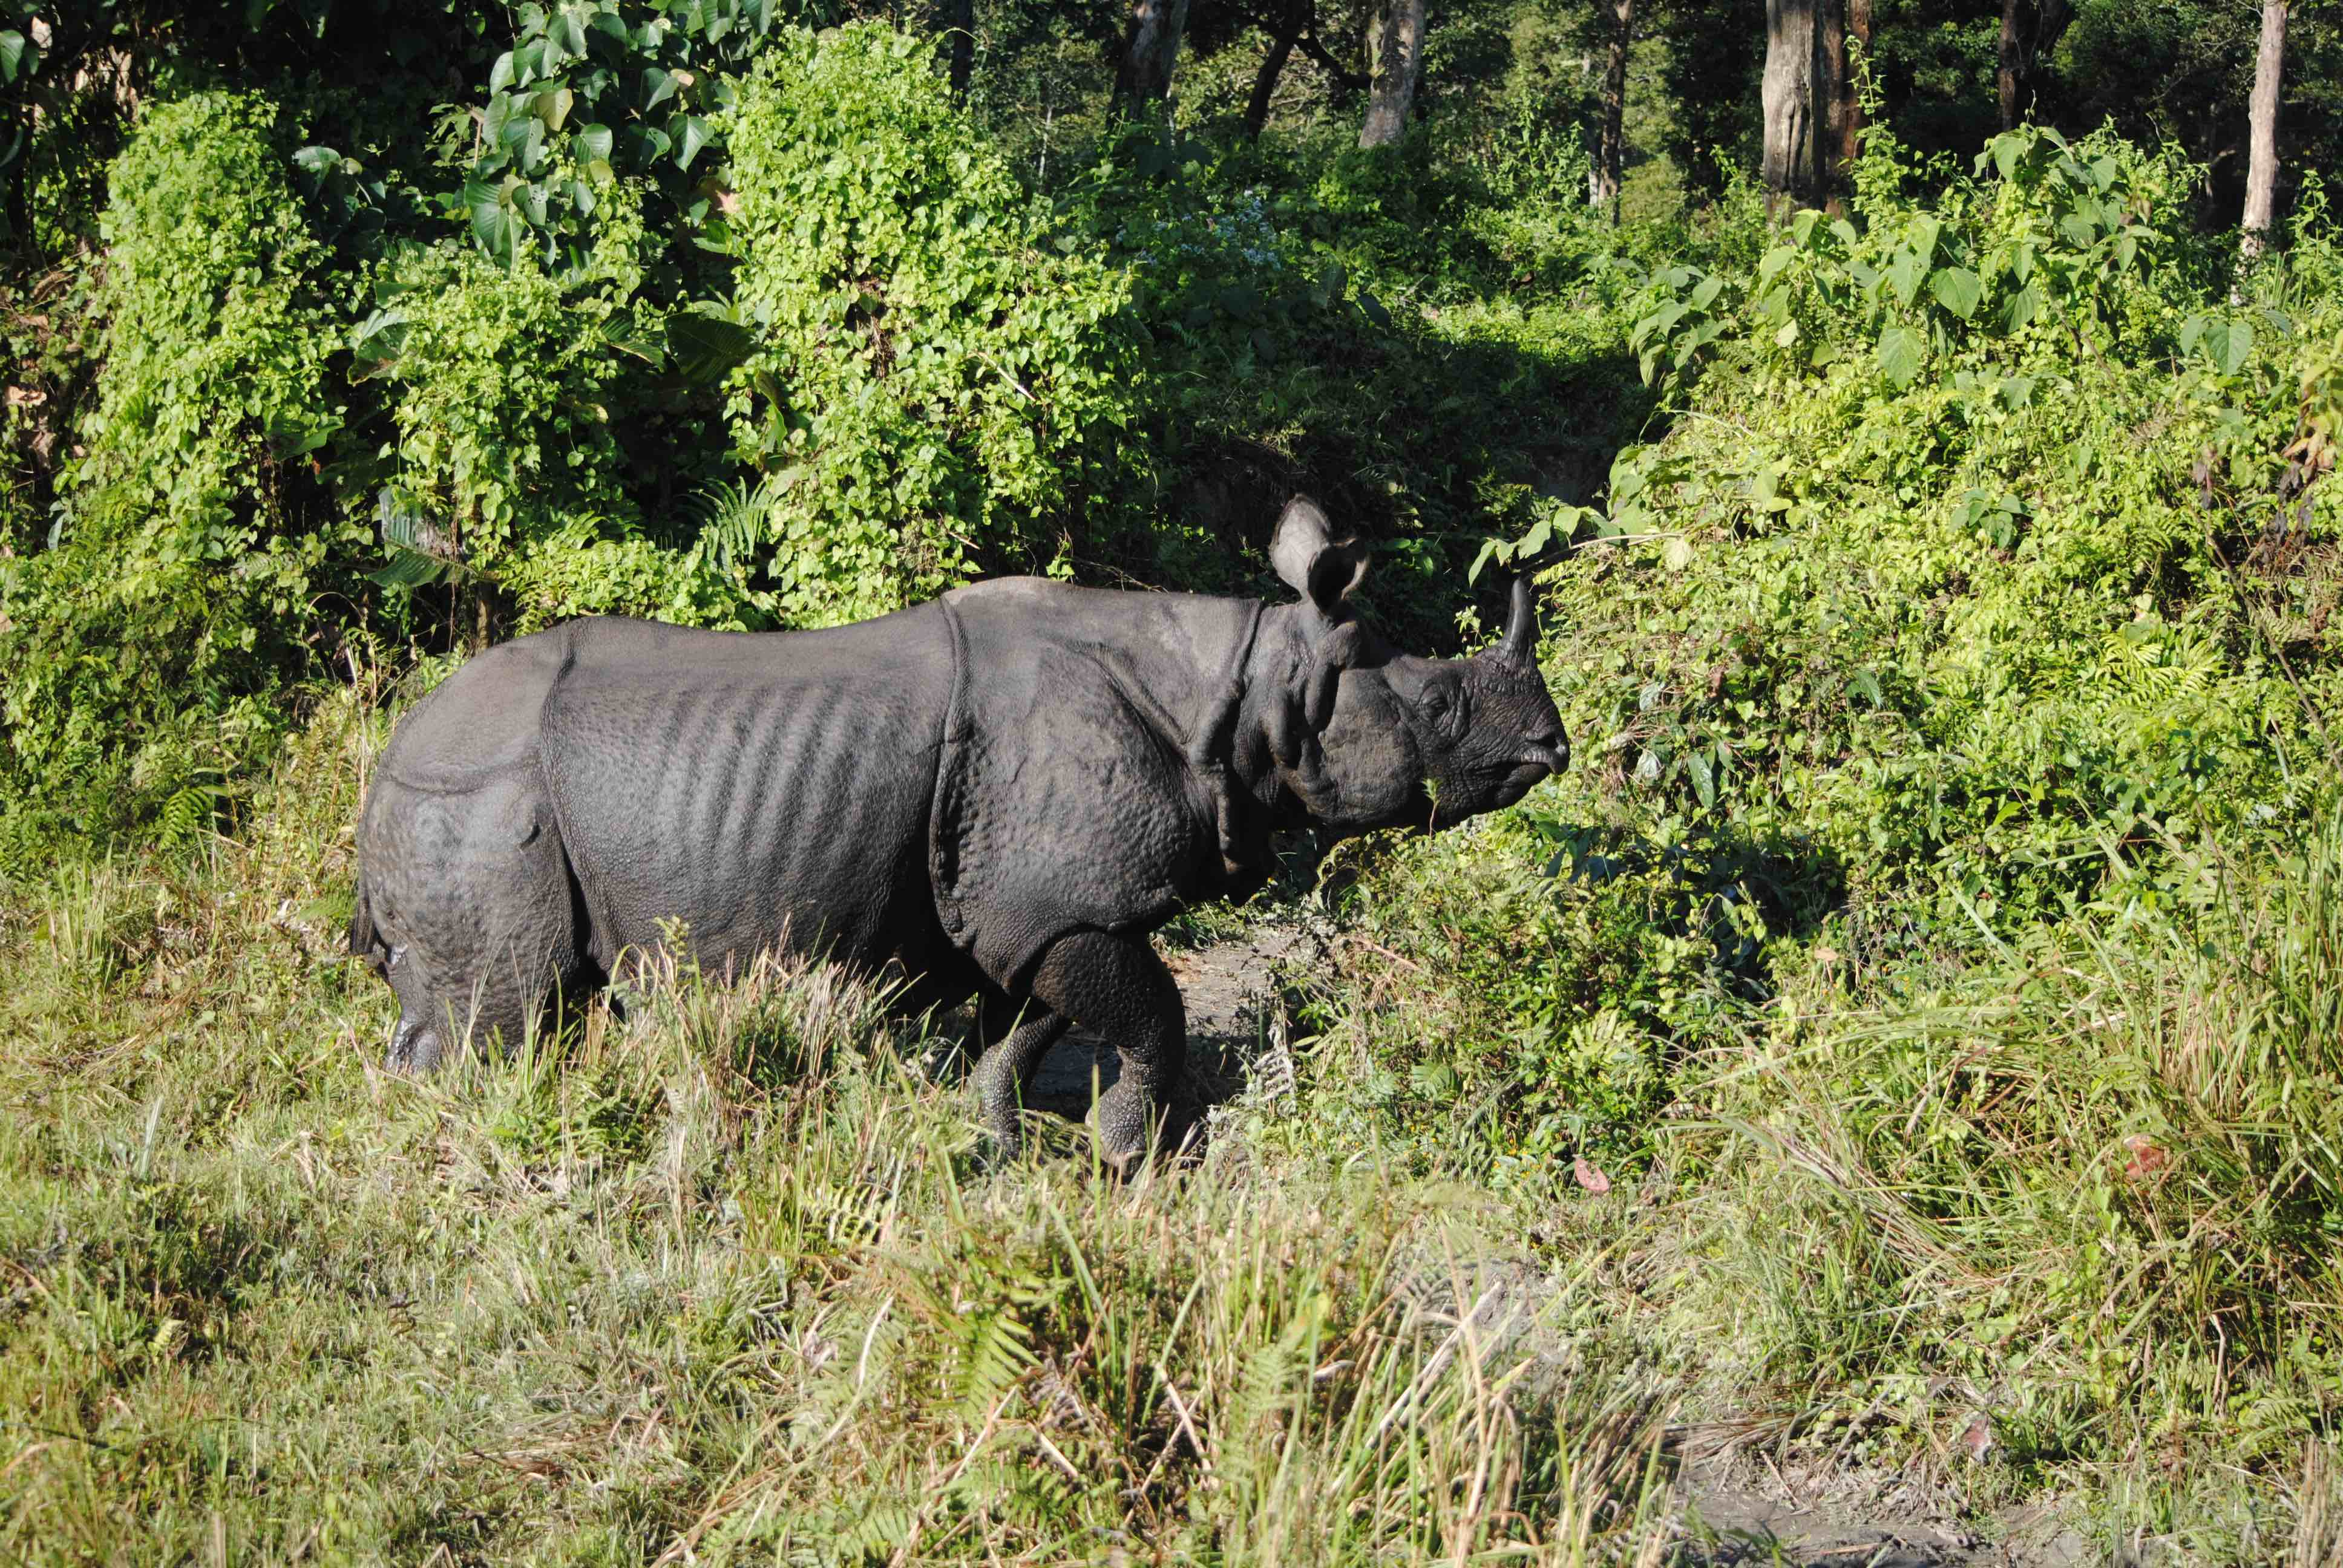 A greater one-horned rhinoceros in West Bengal's Jaldapara National Park. Invasive species including Mikania are also found in that state's rhino reserves. Photo credit: Udayan Dasgupta